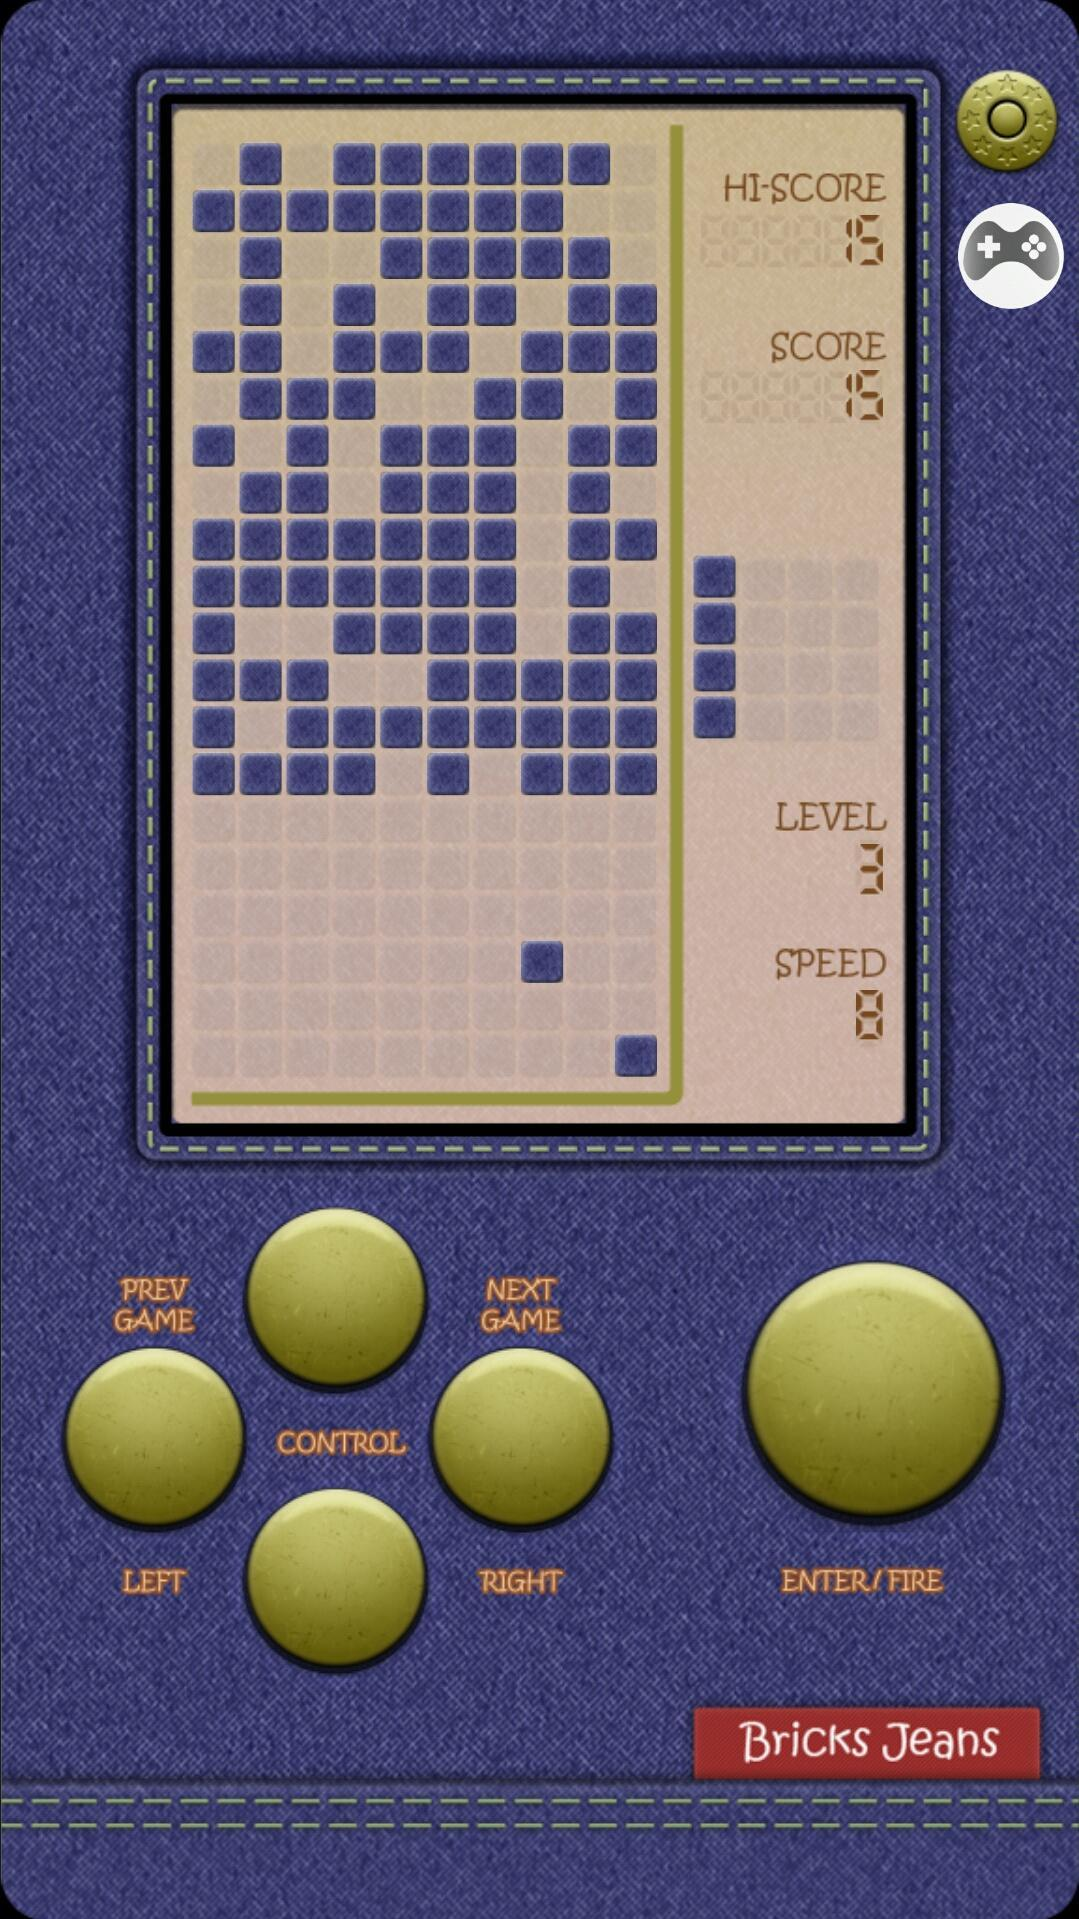 Real Retro Games 2 - Brick Breaker for Android - APK Download